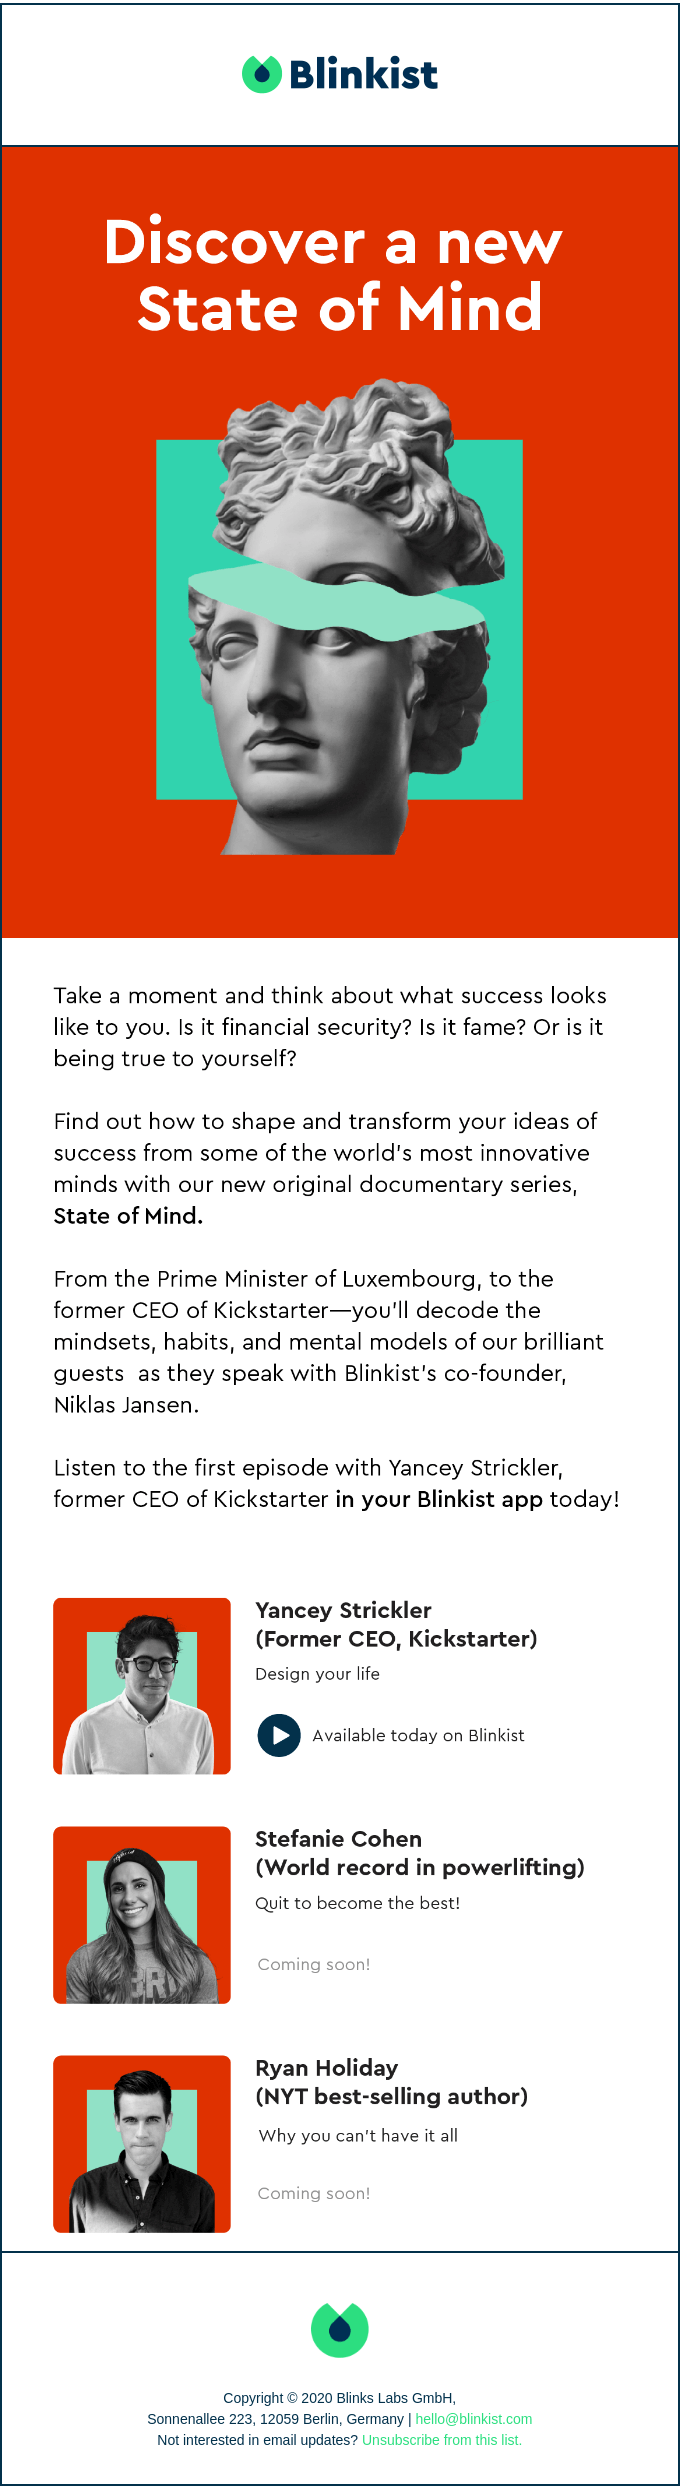 Introducing State of Mind: A Blinkist original series